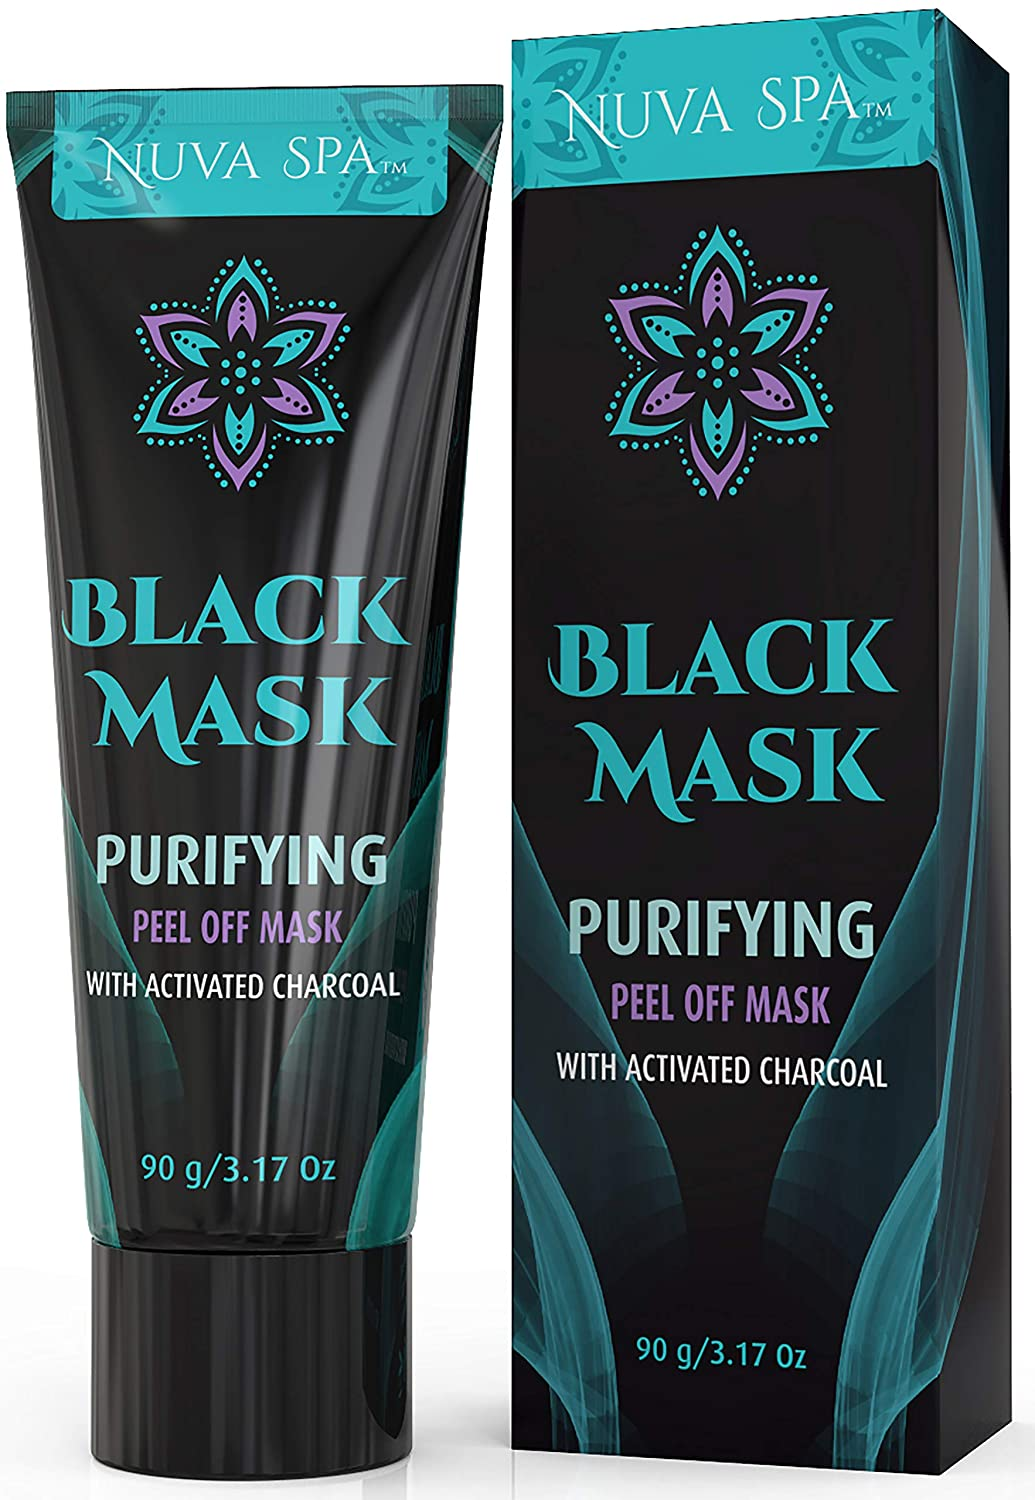 Blackhead Remover Mask, Black Mask w/Activated Charcoal, Blackhead Peel Off Mask for Deep Cleansing Face & Nose 90g (Mascarilla para Puntos Negros) Nuva Brands